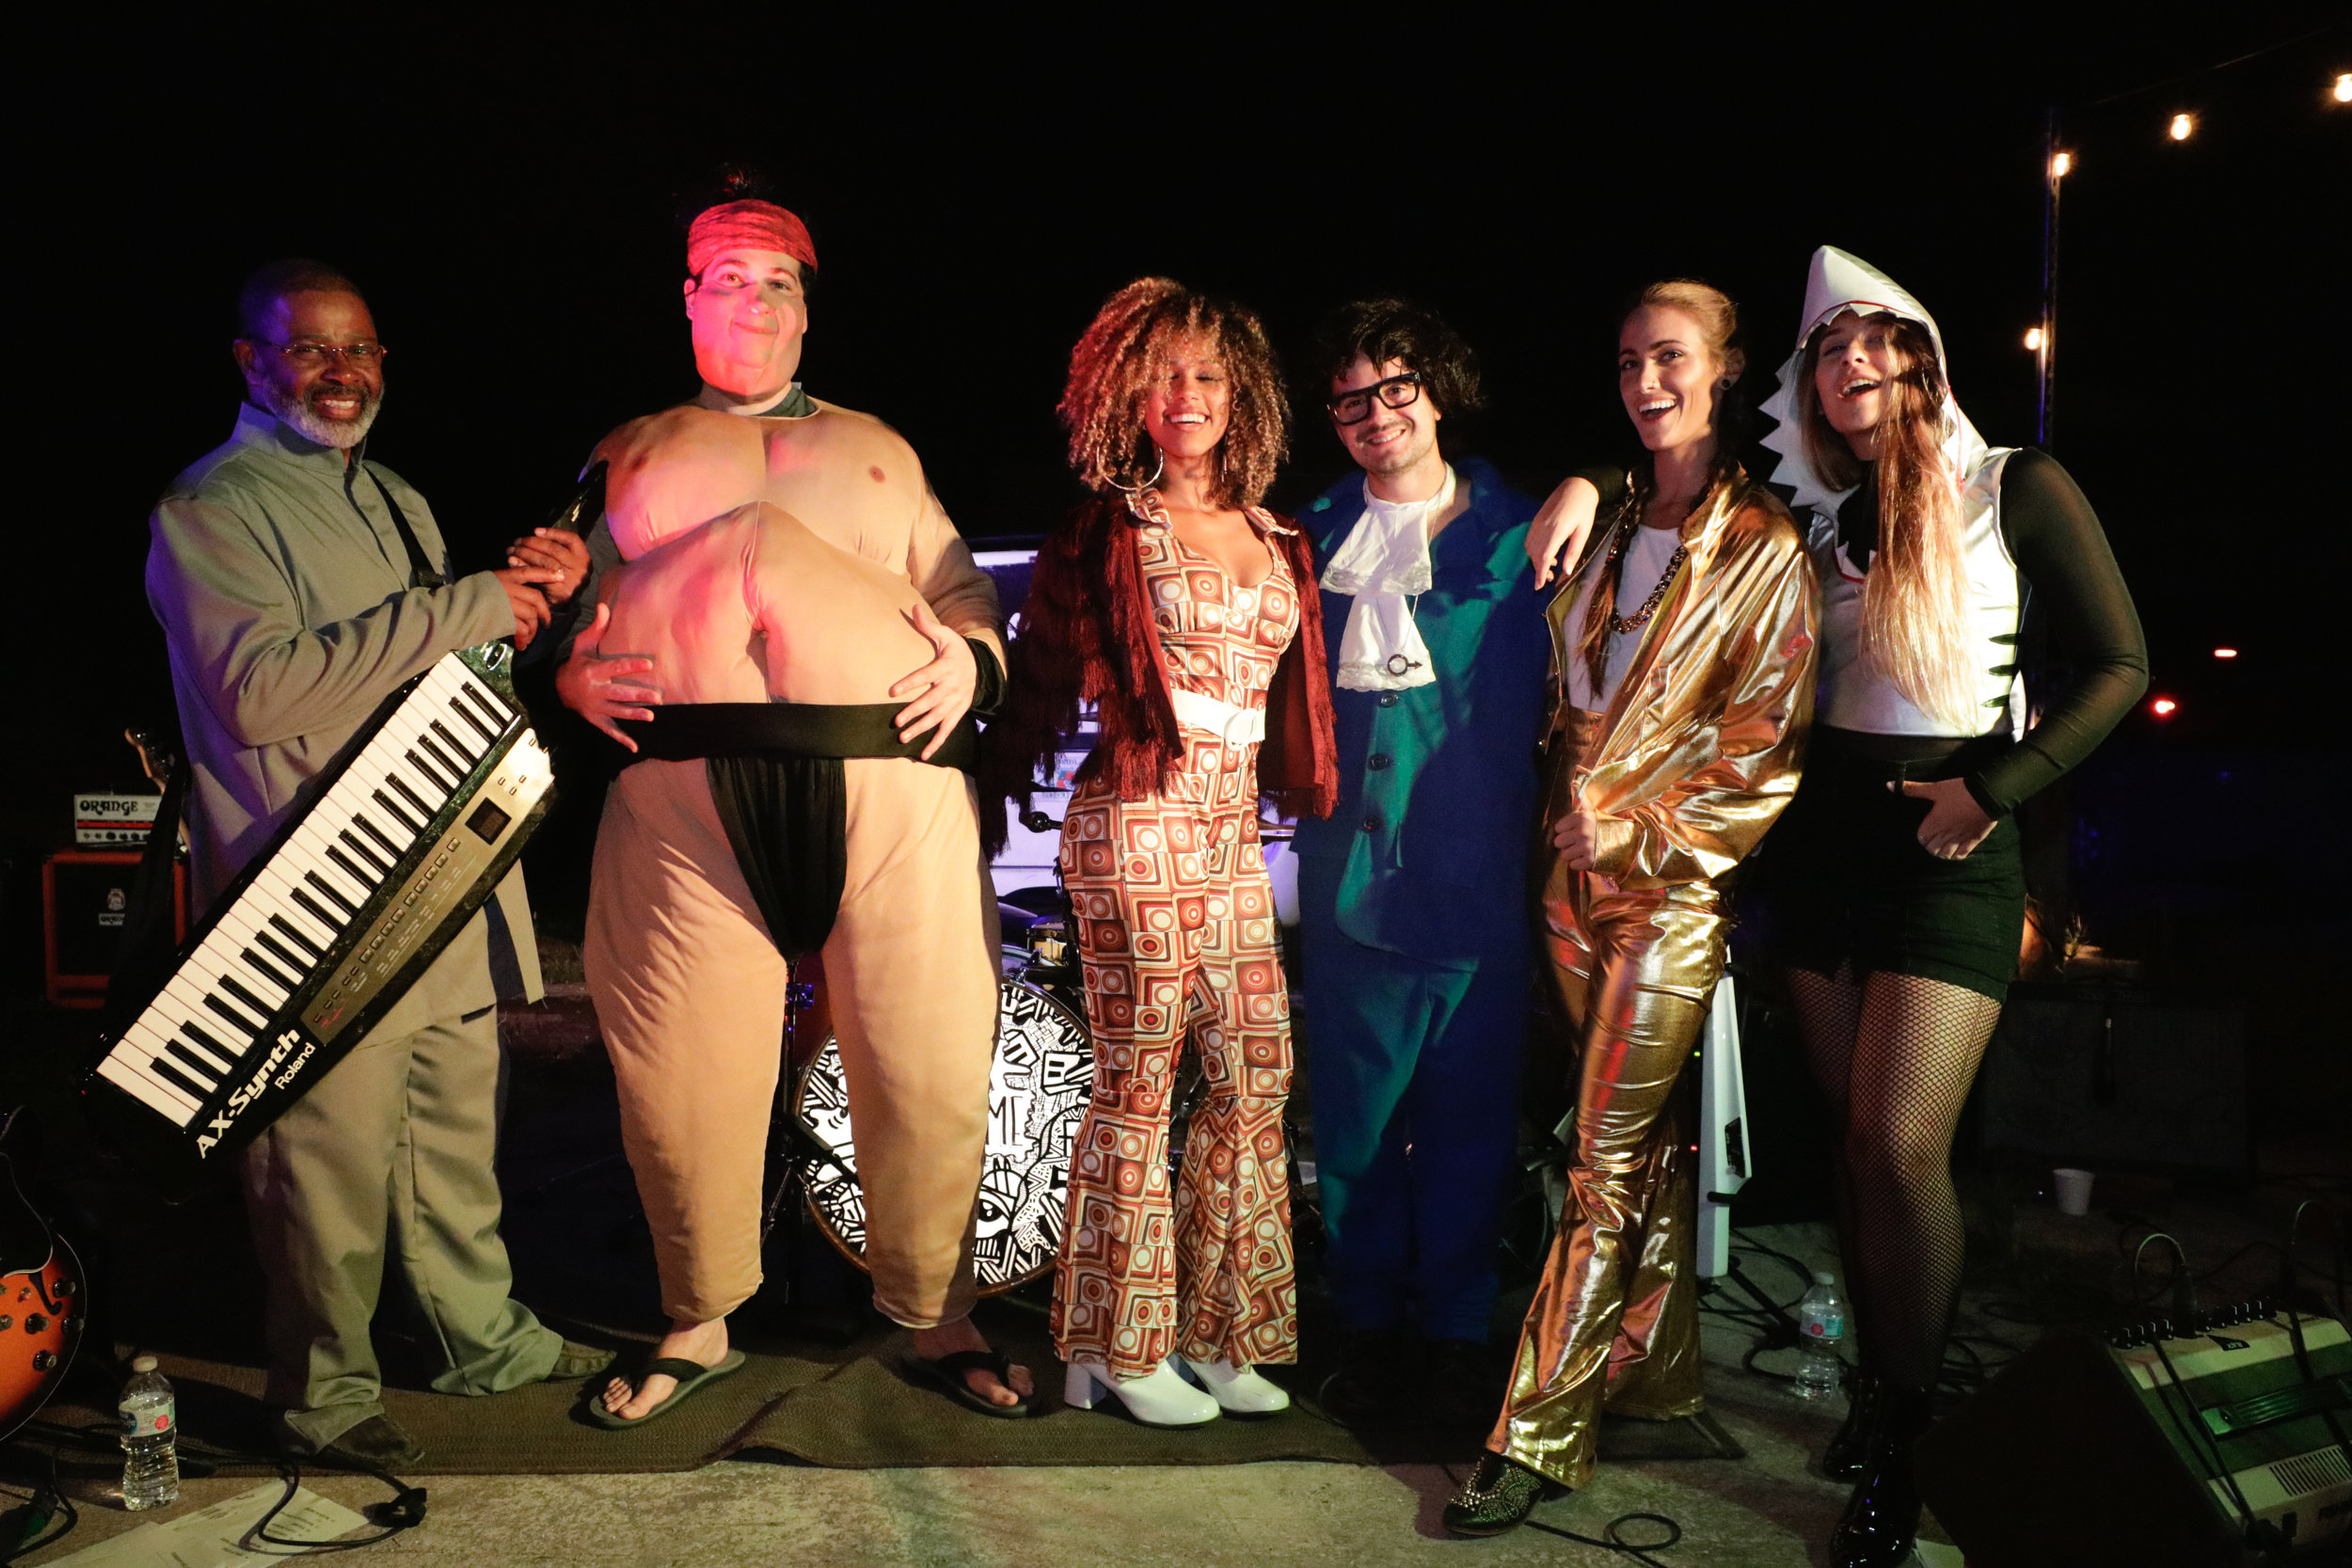 Sons & Daughters Halloween Party - 10.31 - Lake Worth, FL (Austin Powers characters)